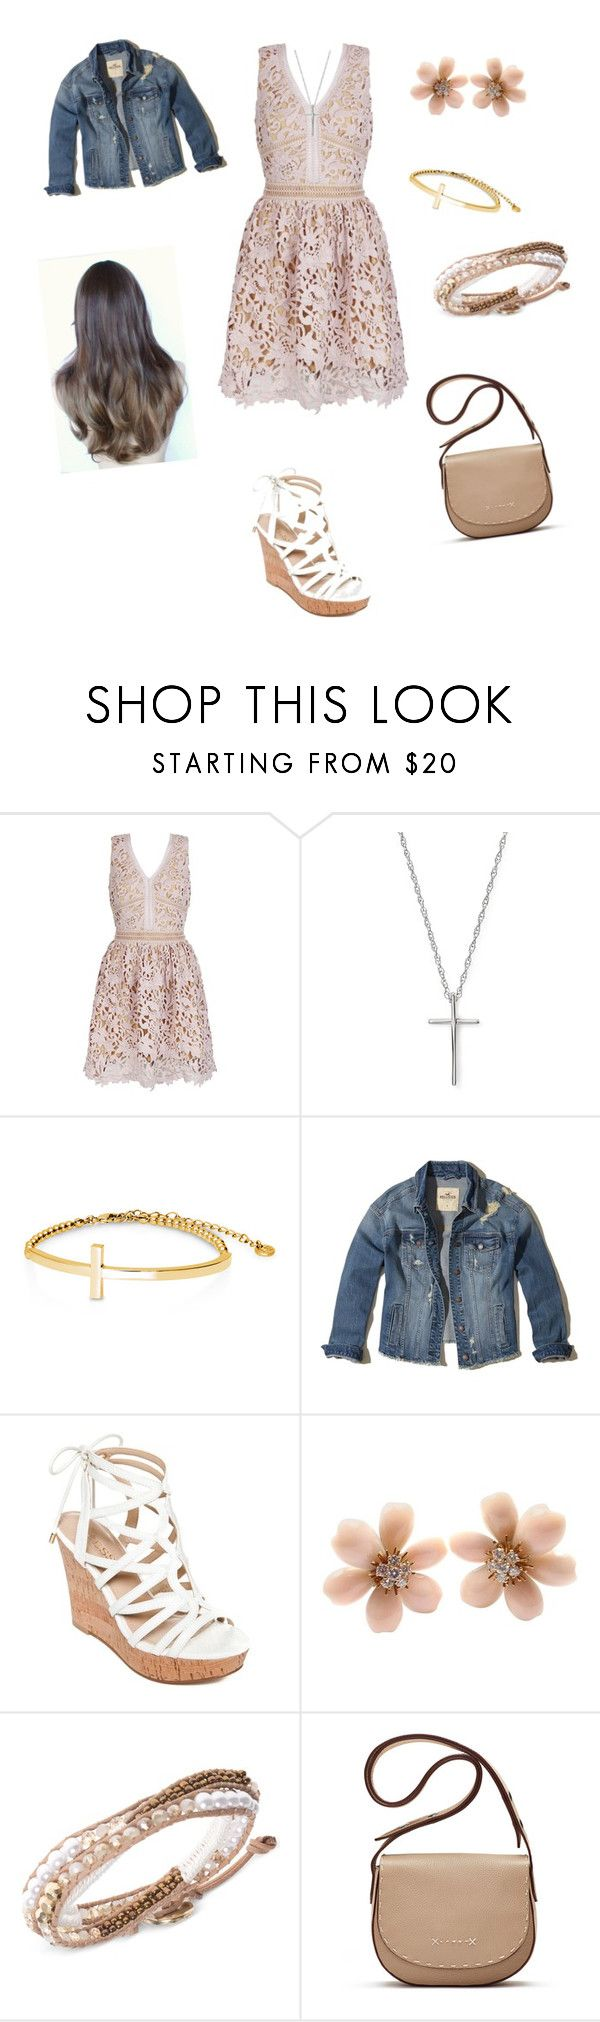 """""""Sunday Style"""" by jess-stylist22 on Polyvore featuring Bloomingdale's, BERRICLE, Hollister Co., GUESS, Van Cleef & Arpels, Lonna & Lilly and Elizabeth and James"""